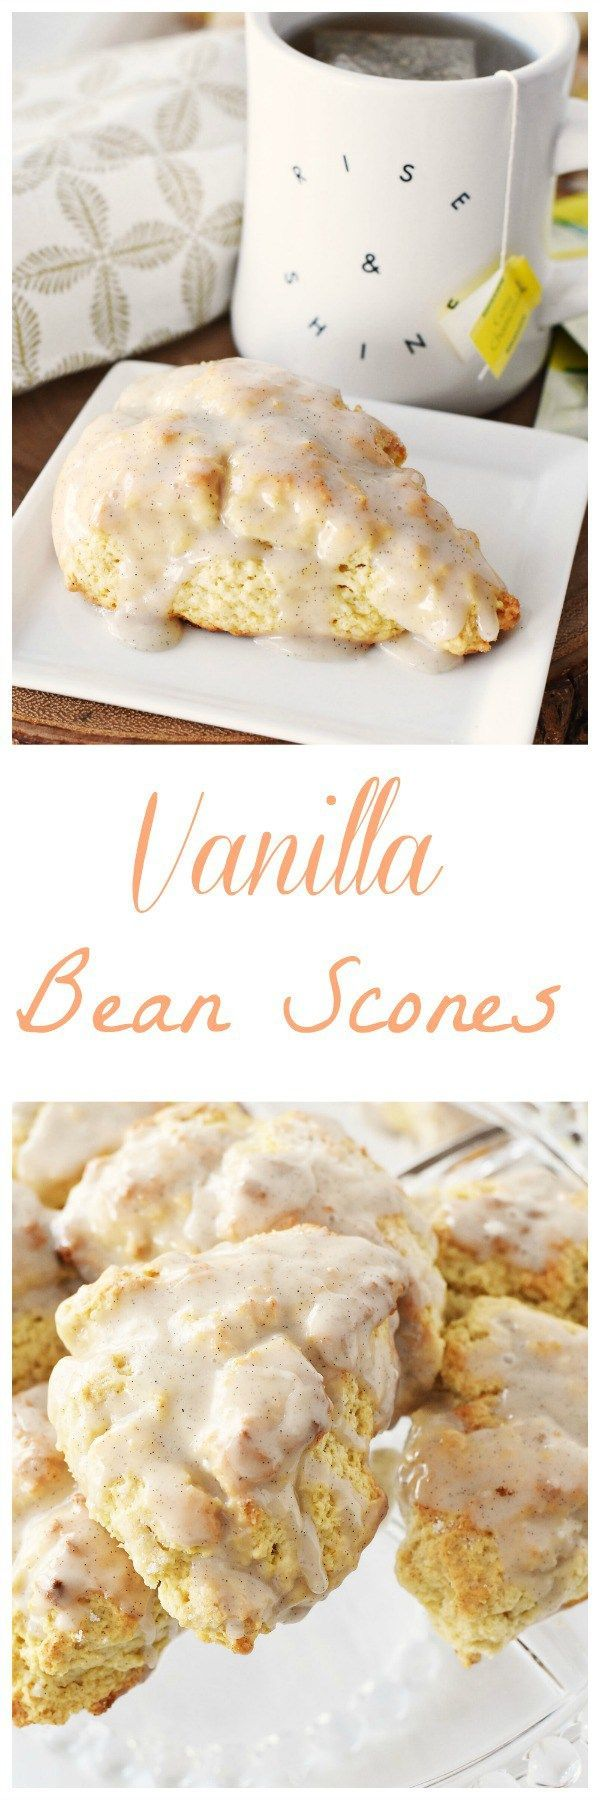 Vanilla Bean Scones anyone? Get this perfectly sweet and moist vanilla bean scone recipe today. the glaze reminded my kids of vanilla ice cream. Pairs perfectly with tea as well!